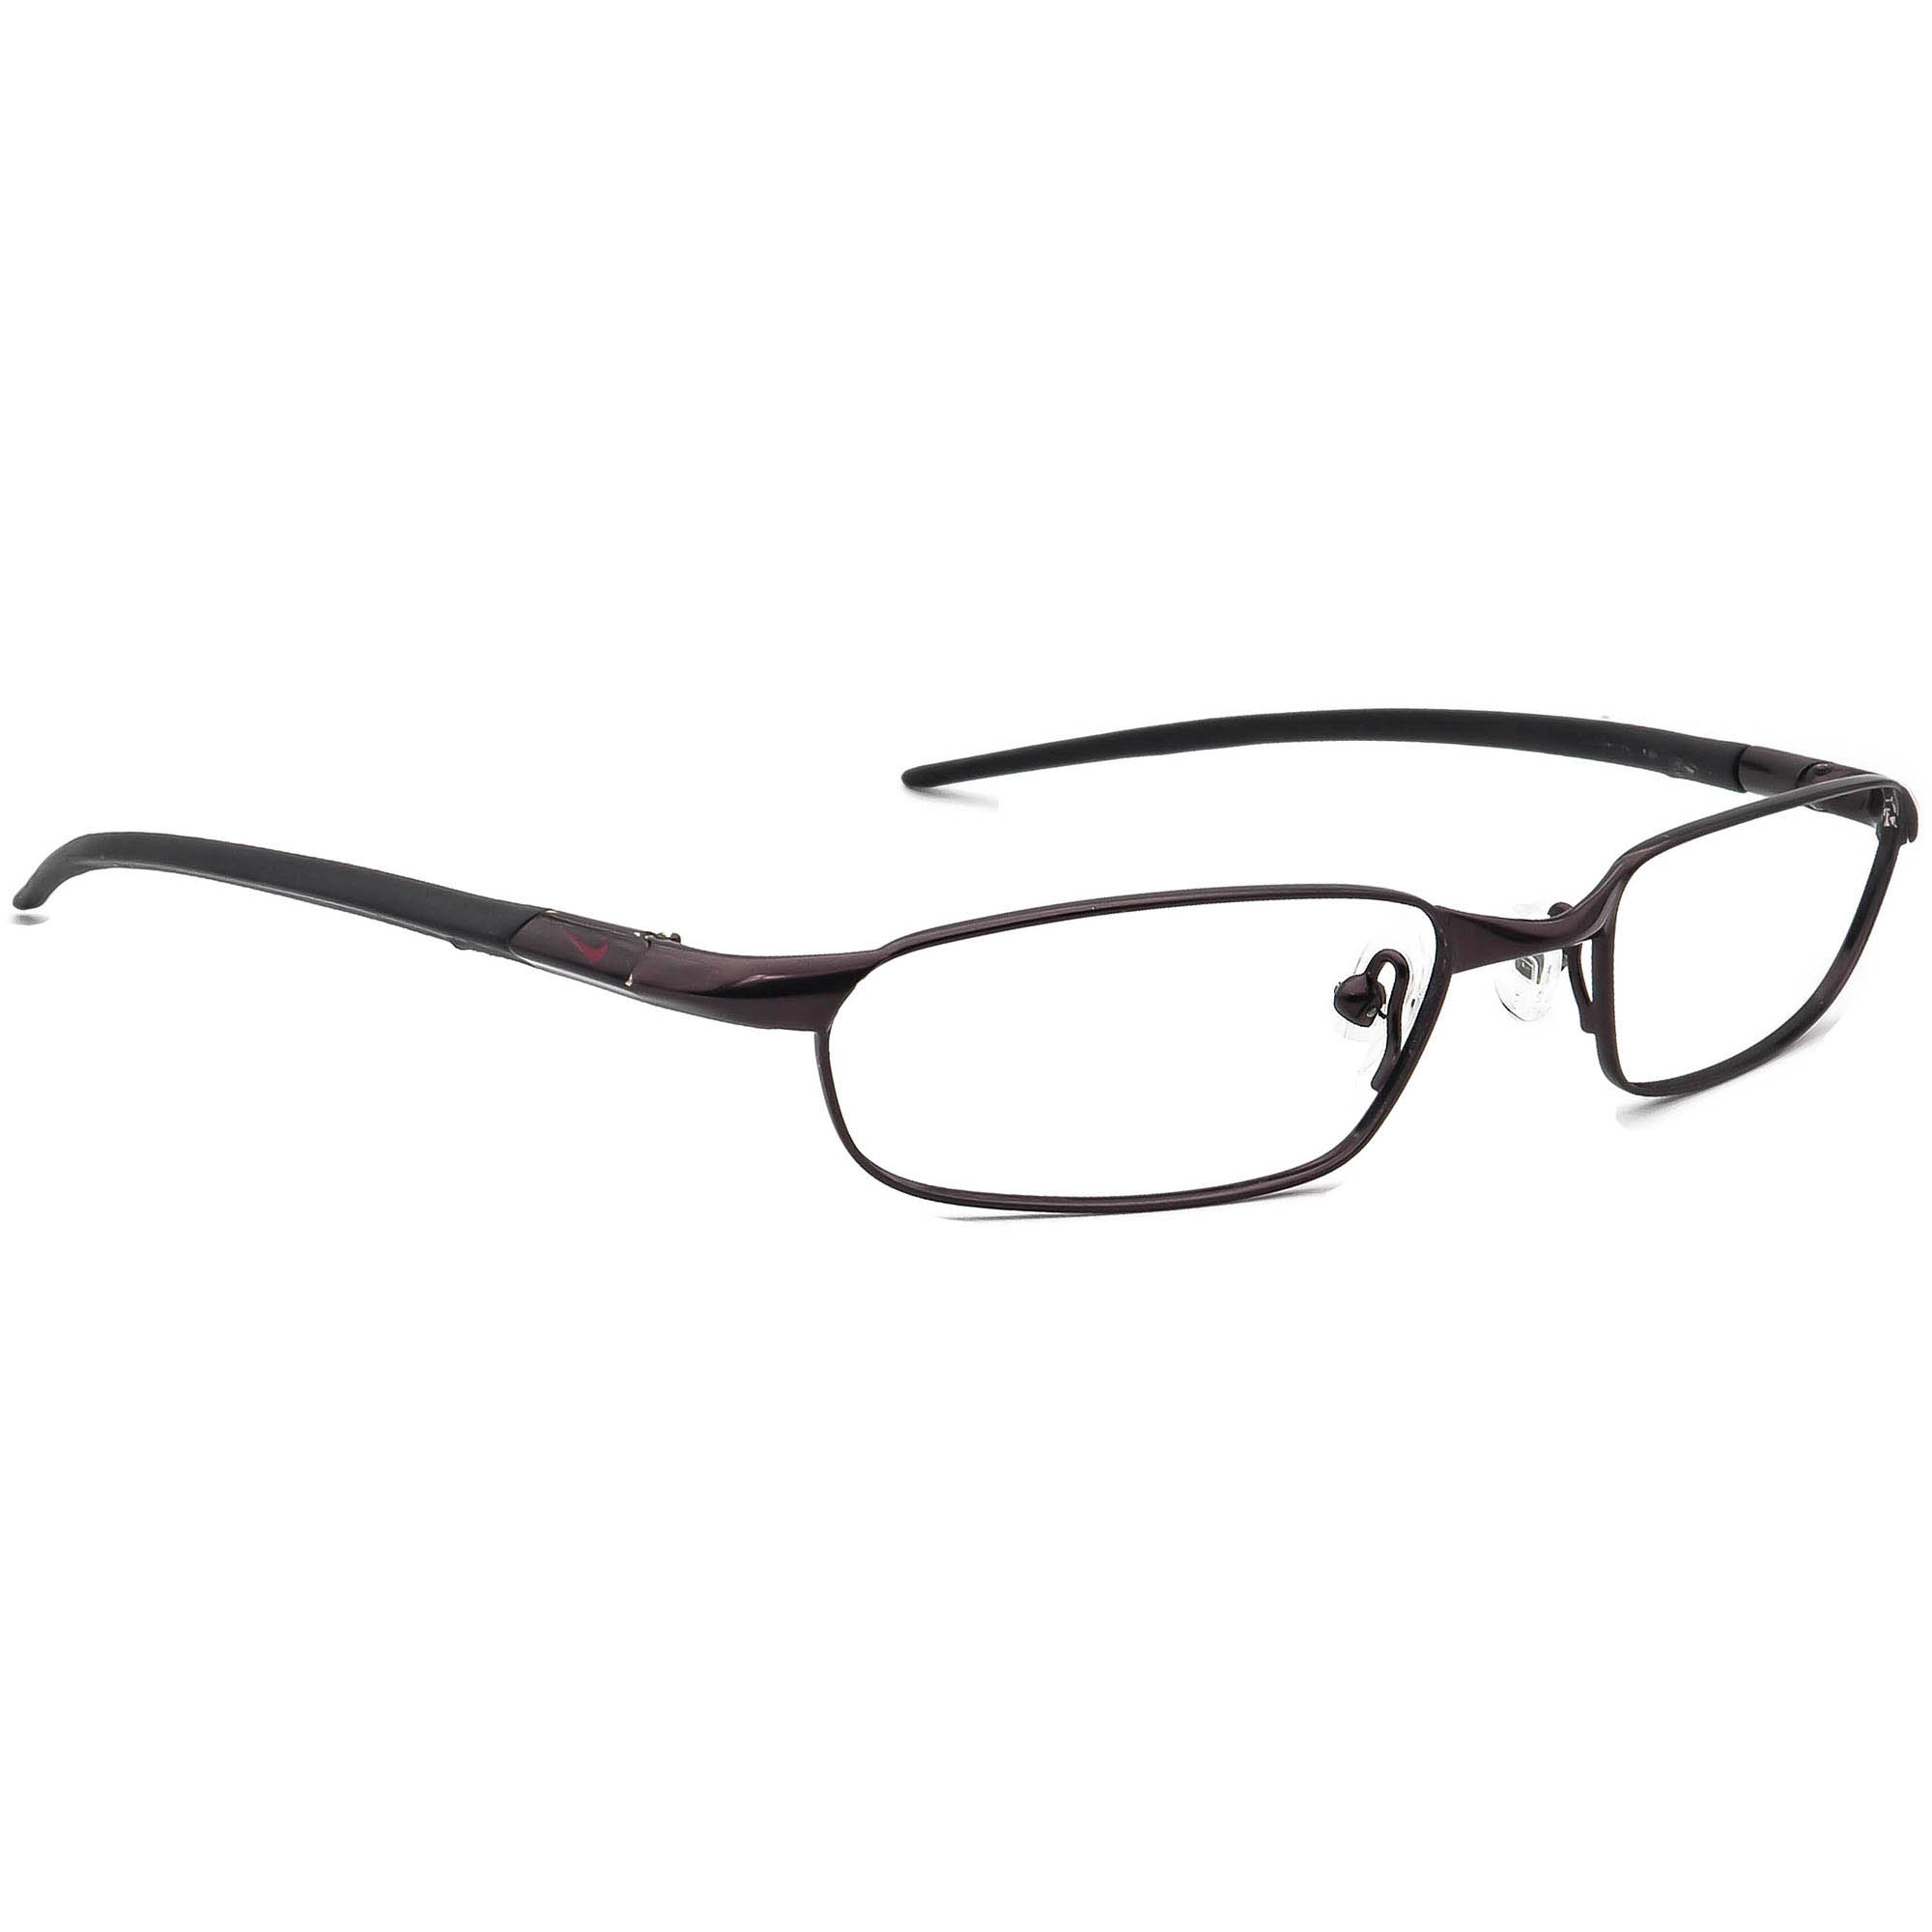 Nike 4102 Flexon Eyeglasses